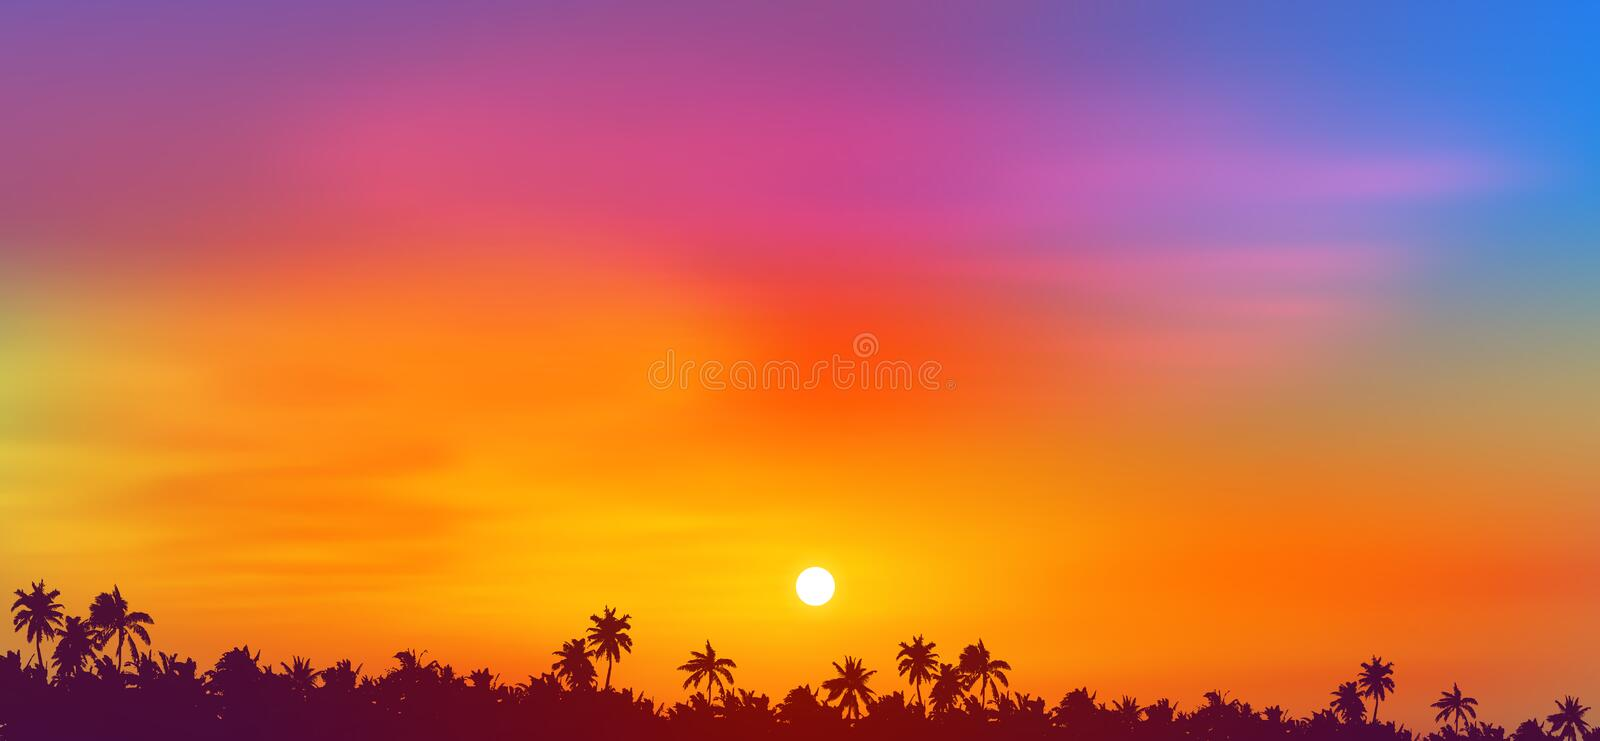 Colorful sky sunset view above tropical palm trees forest dark silhouette, vector illustration.  royalty free illustration